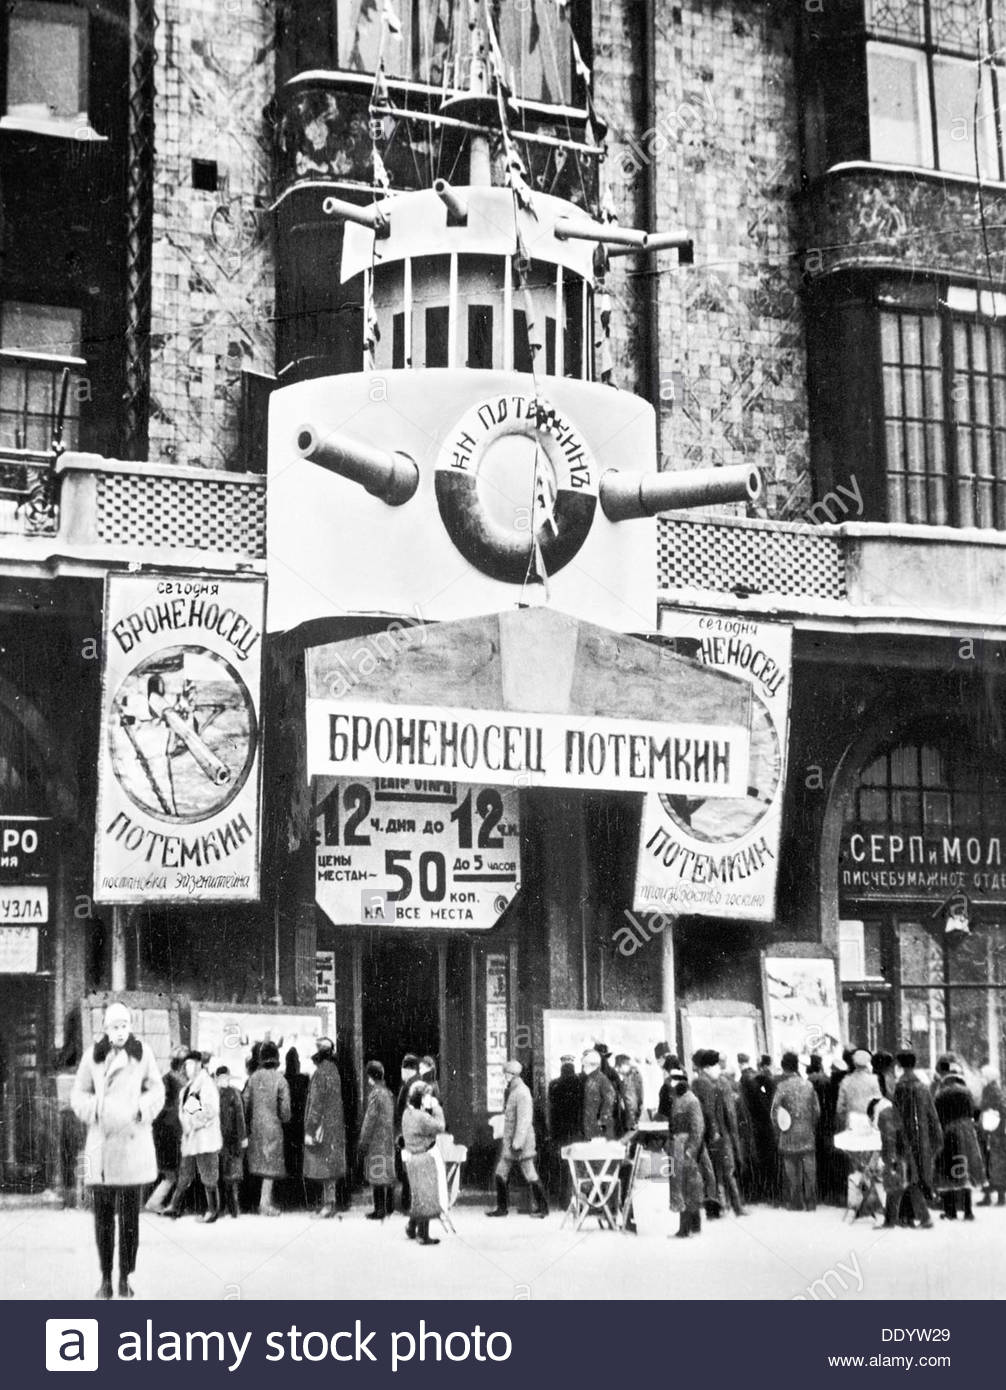 The Moscow premiere of 'The Battleship Potemkin', USSR 1926. - Stock Image